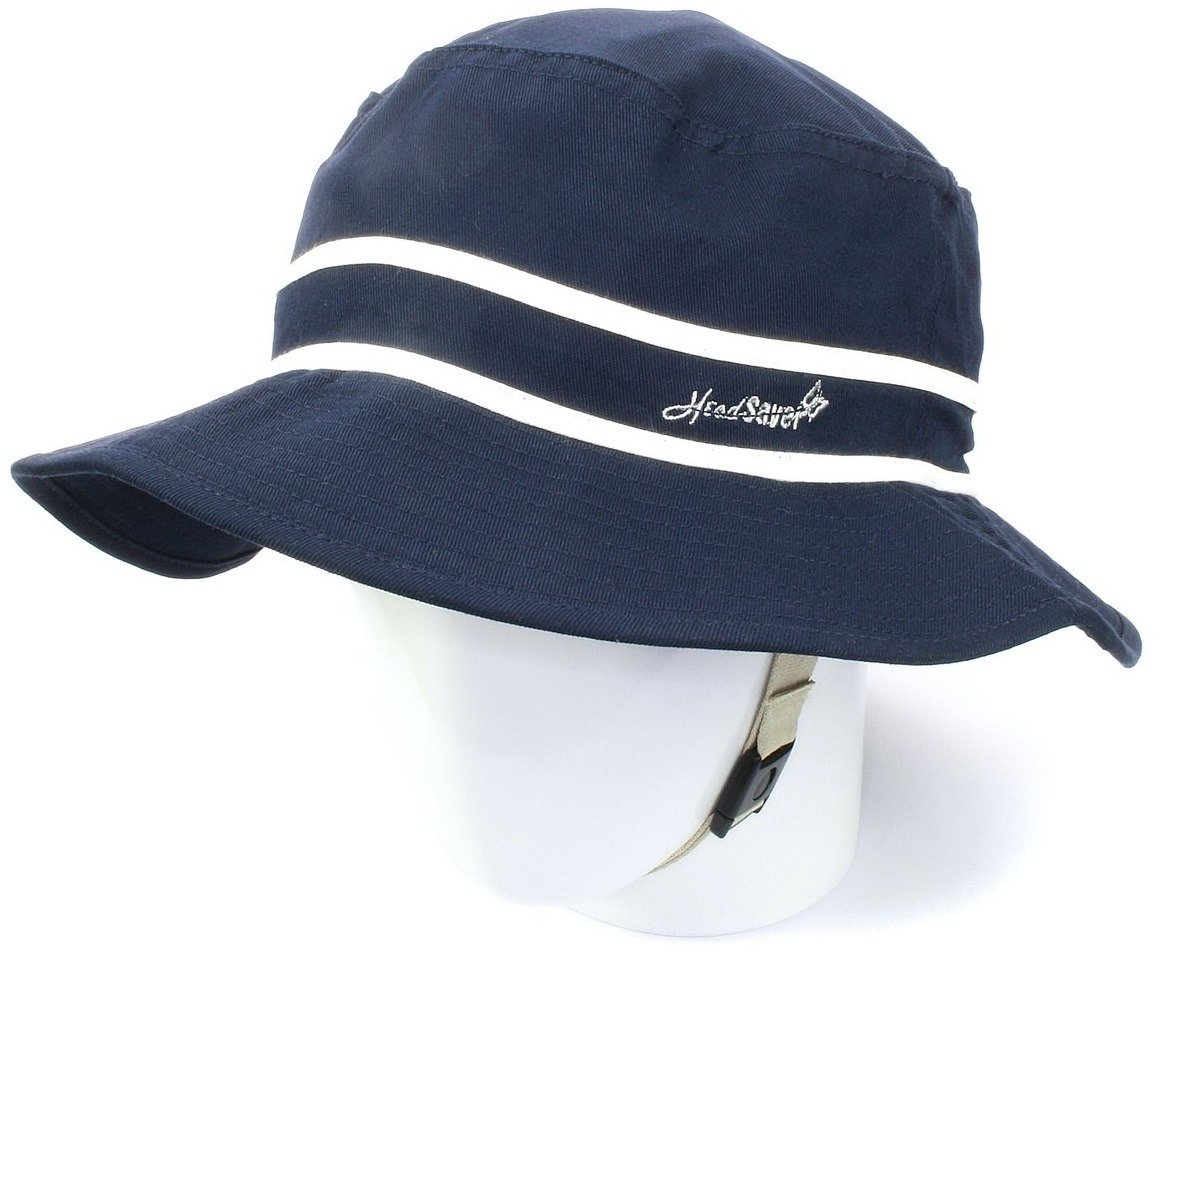 SUN HAT TO FIT HEAD SAVER SMALL/MEDIUM, EACH